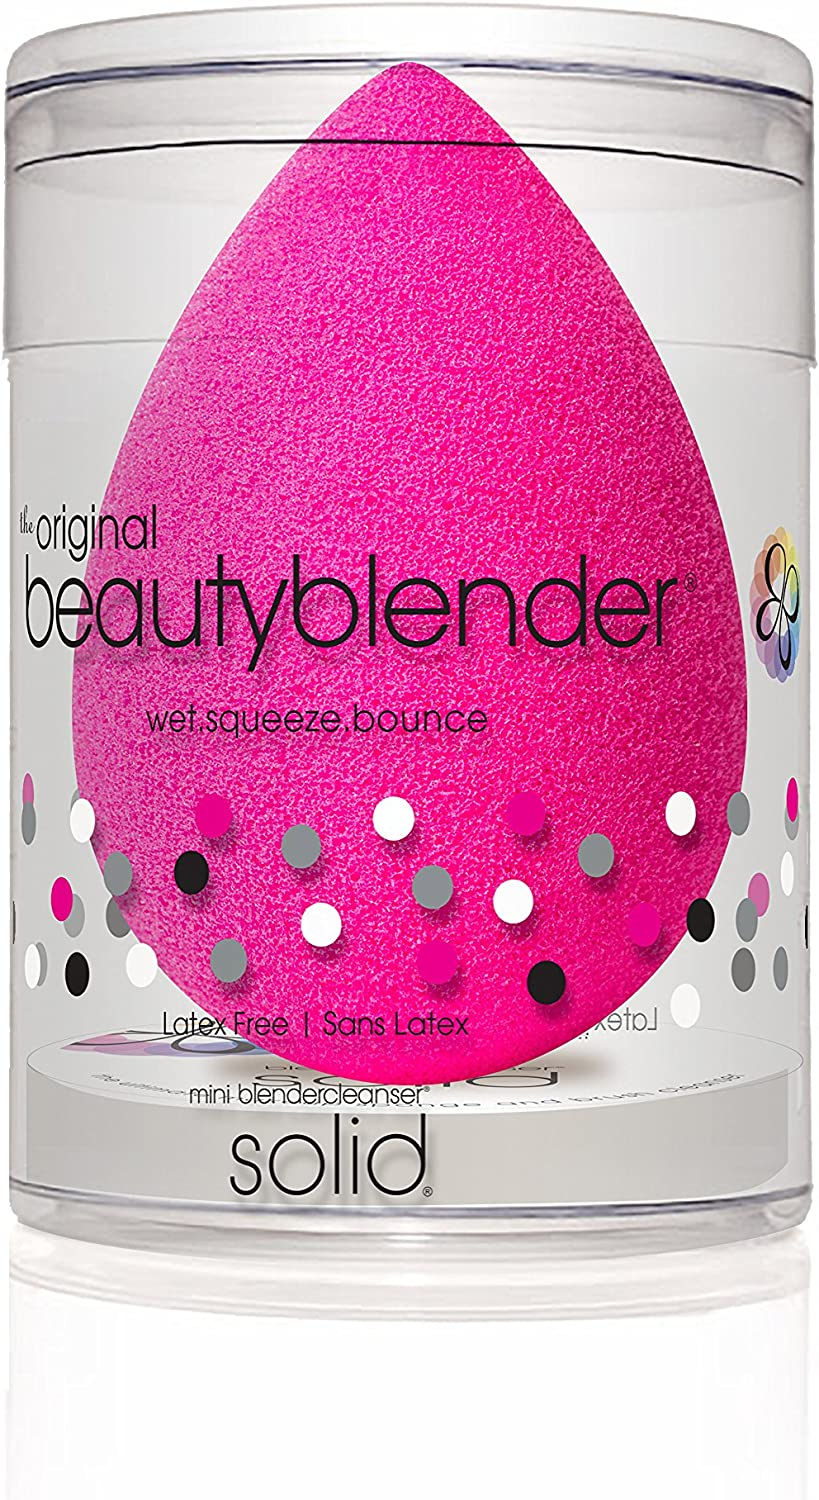 Beautyblender Original Blender Sponge with Mini blendercleanser Solid